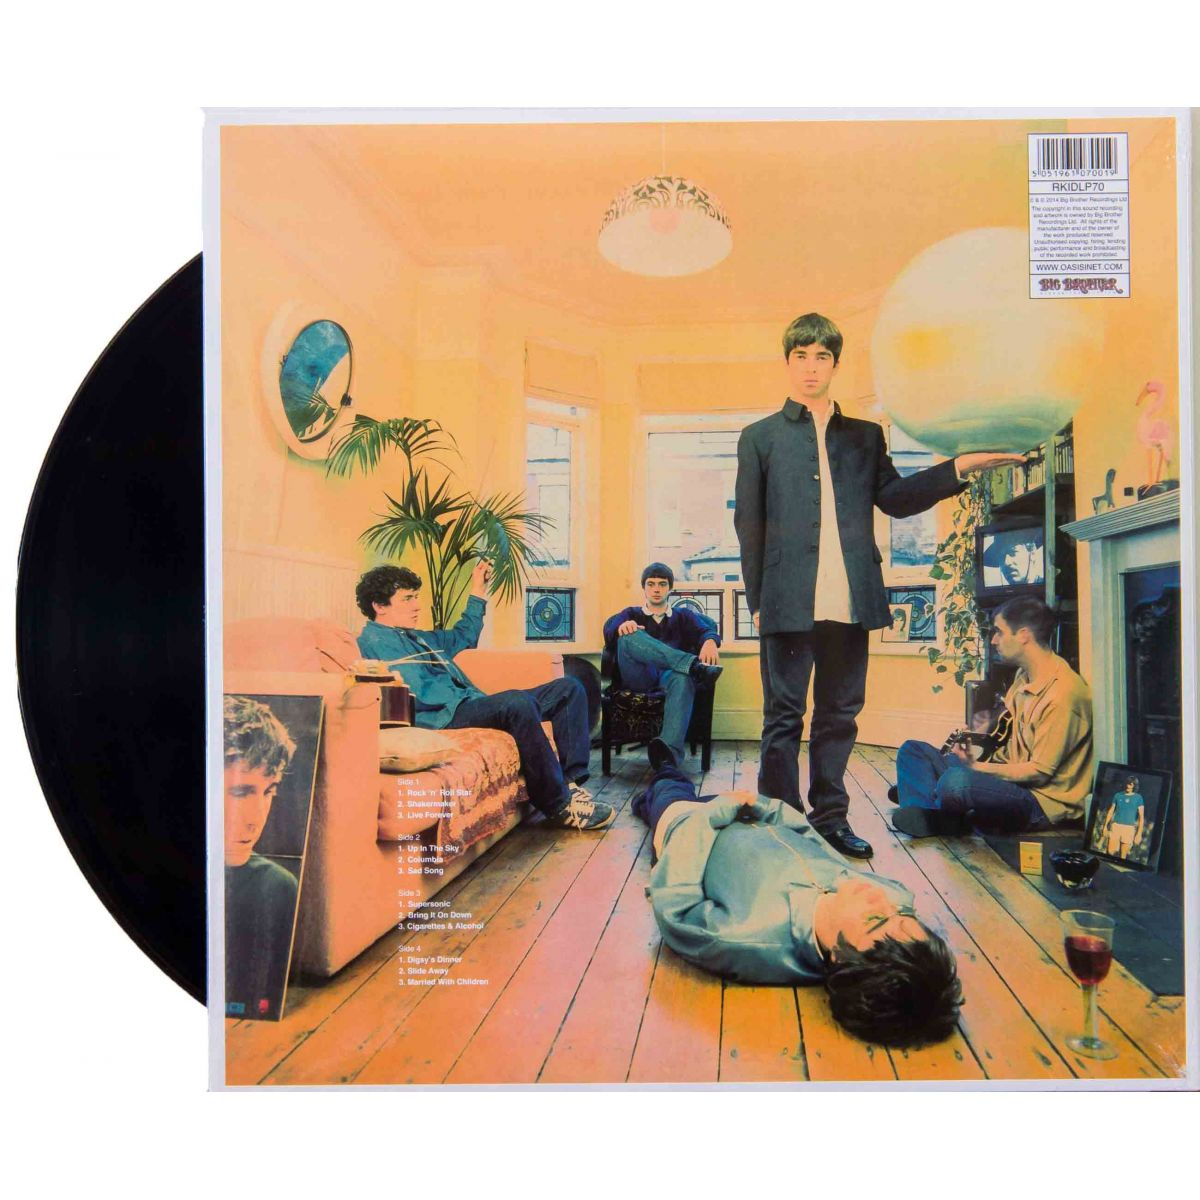 Lp Vinil Oasis Definitely Maybe